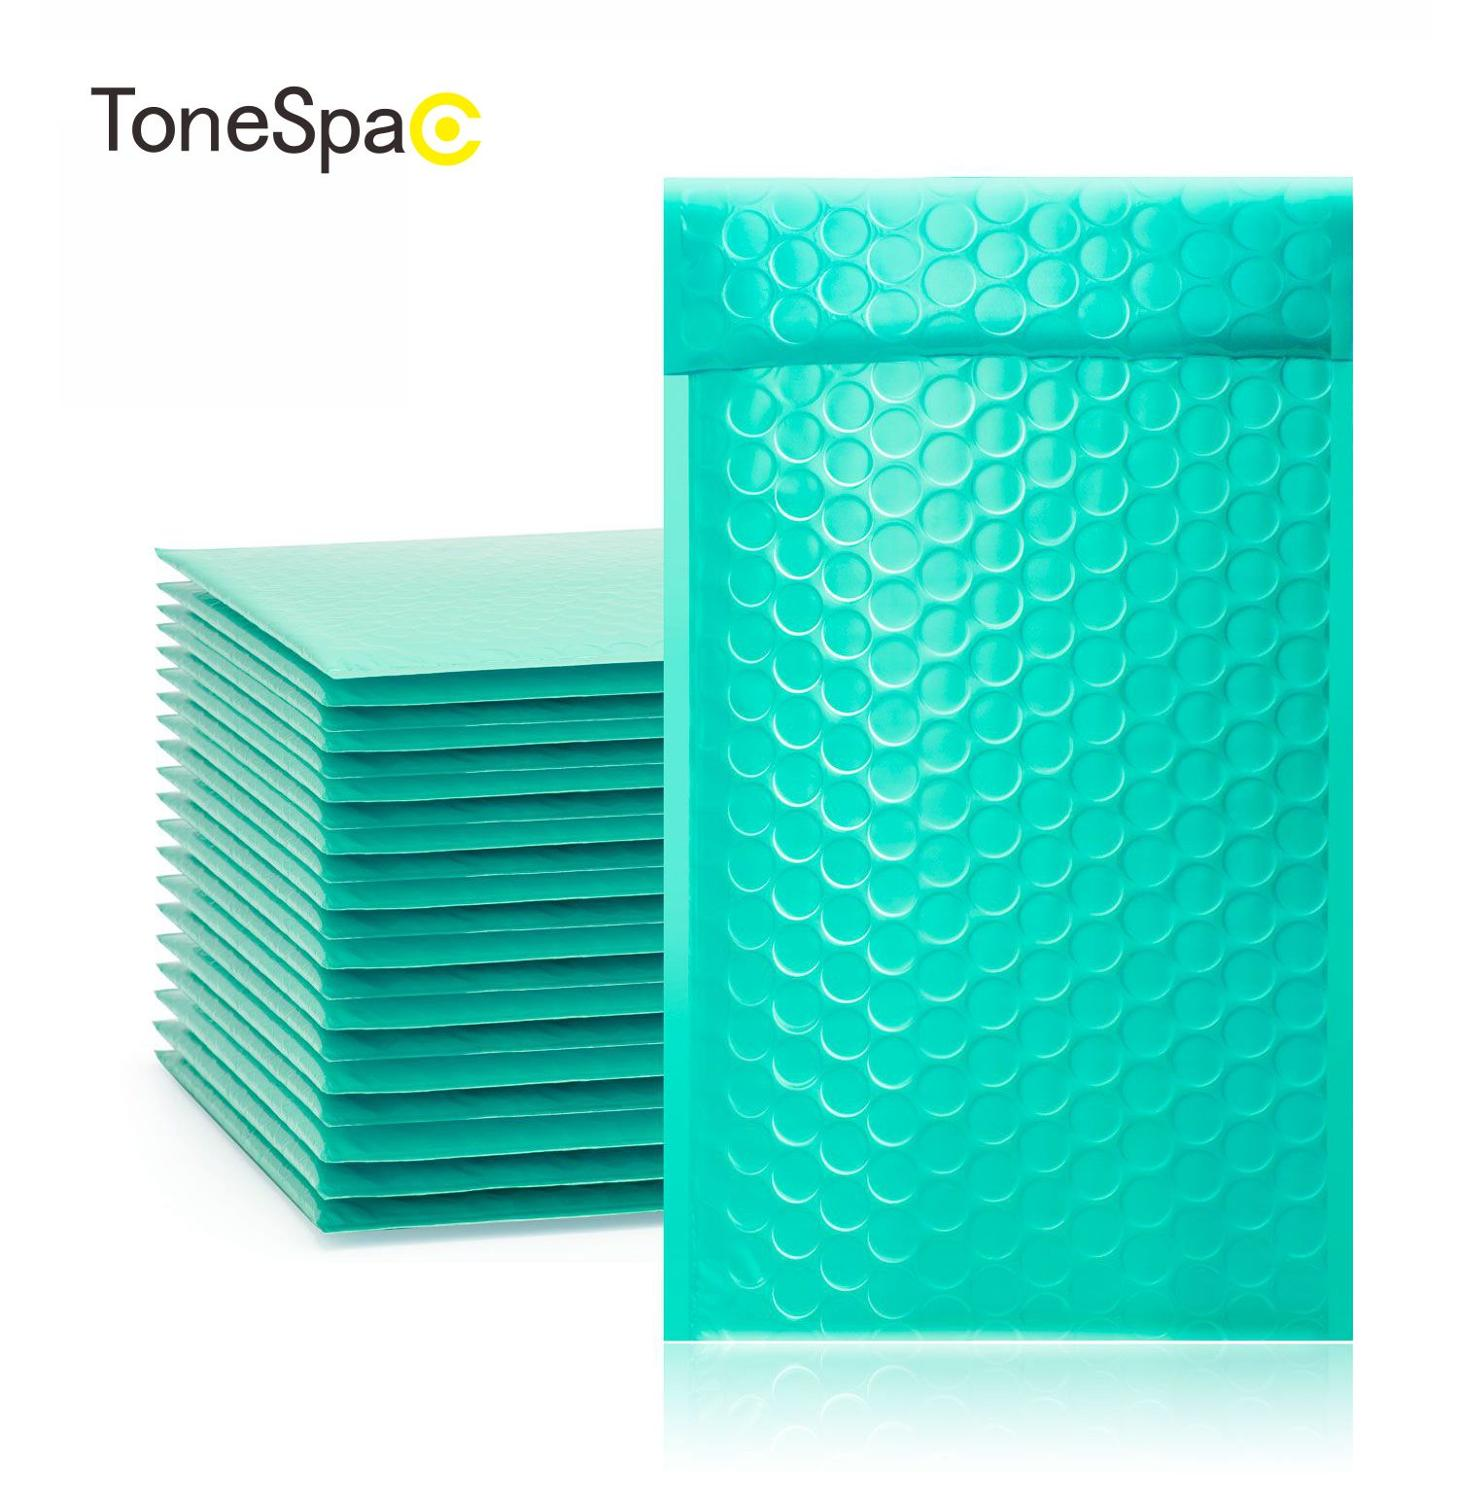 TONESPAC 130*210mm 50pcs Poly Bubble Mailer Padded Shipping Envelopes Bag Self Seal Small Waterproof Packaging.Teal